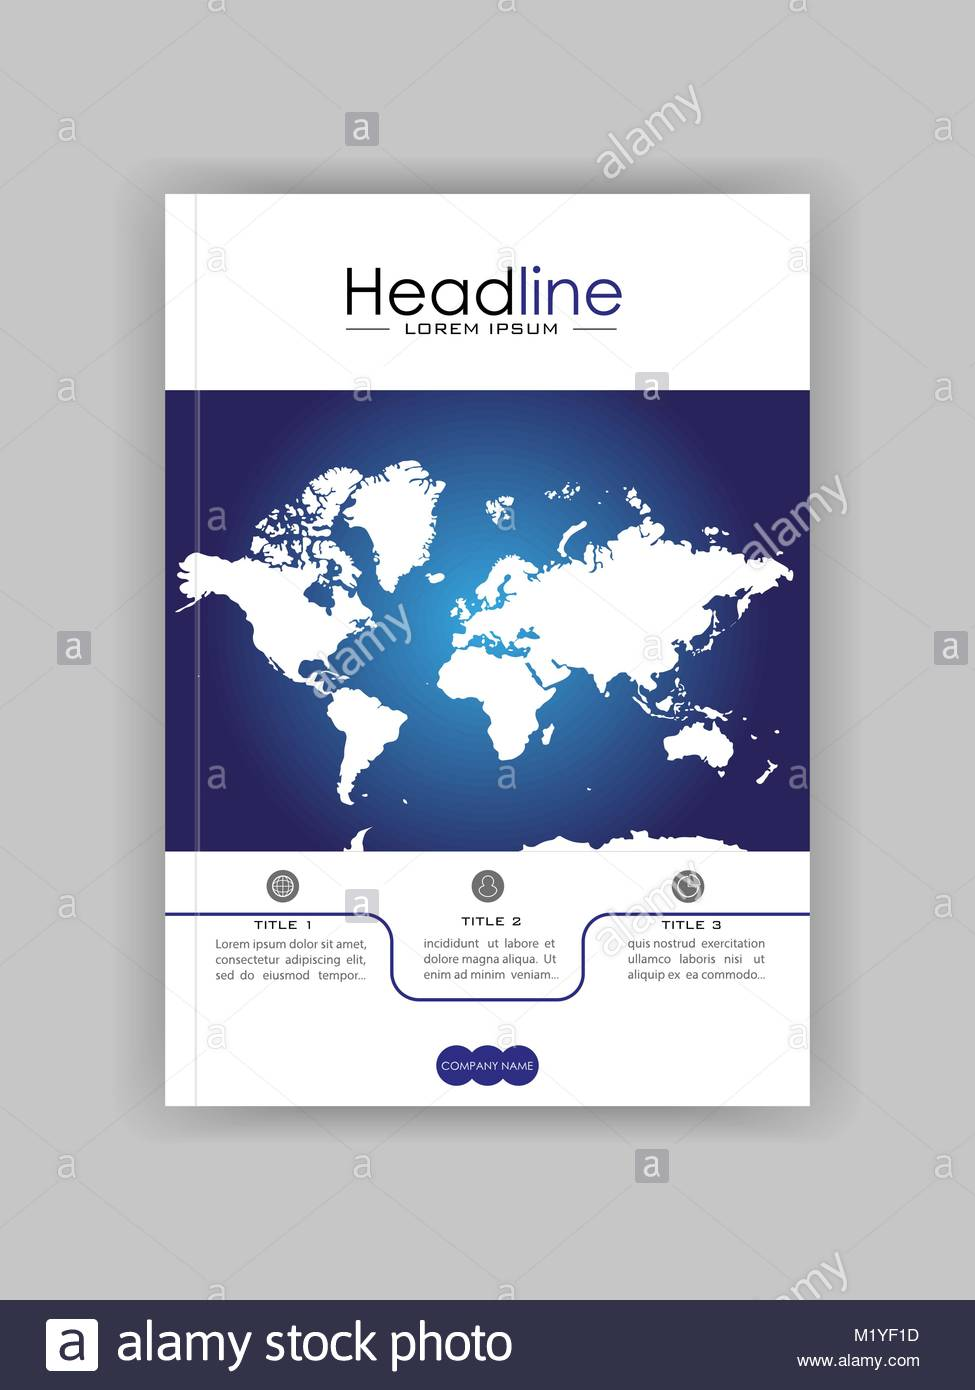 World map banner cover design book cover journal conference stock world map banner cover design book cover journal conference annual report design vector gumiabroncs Image collections